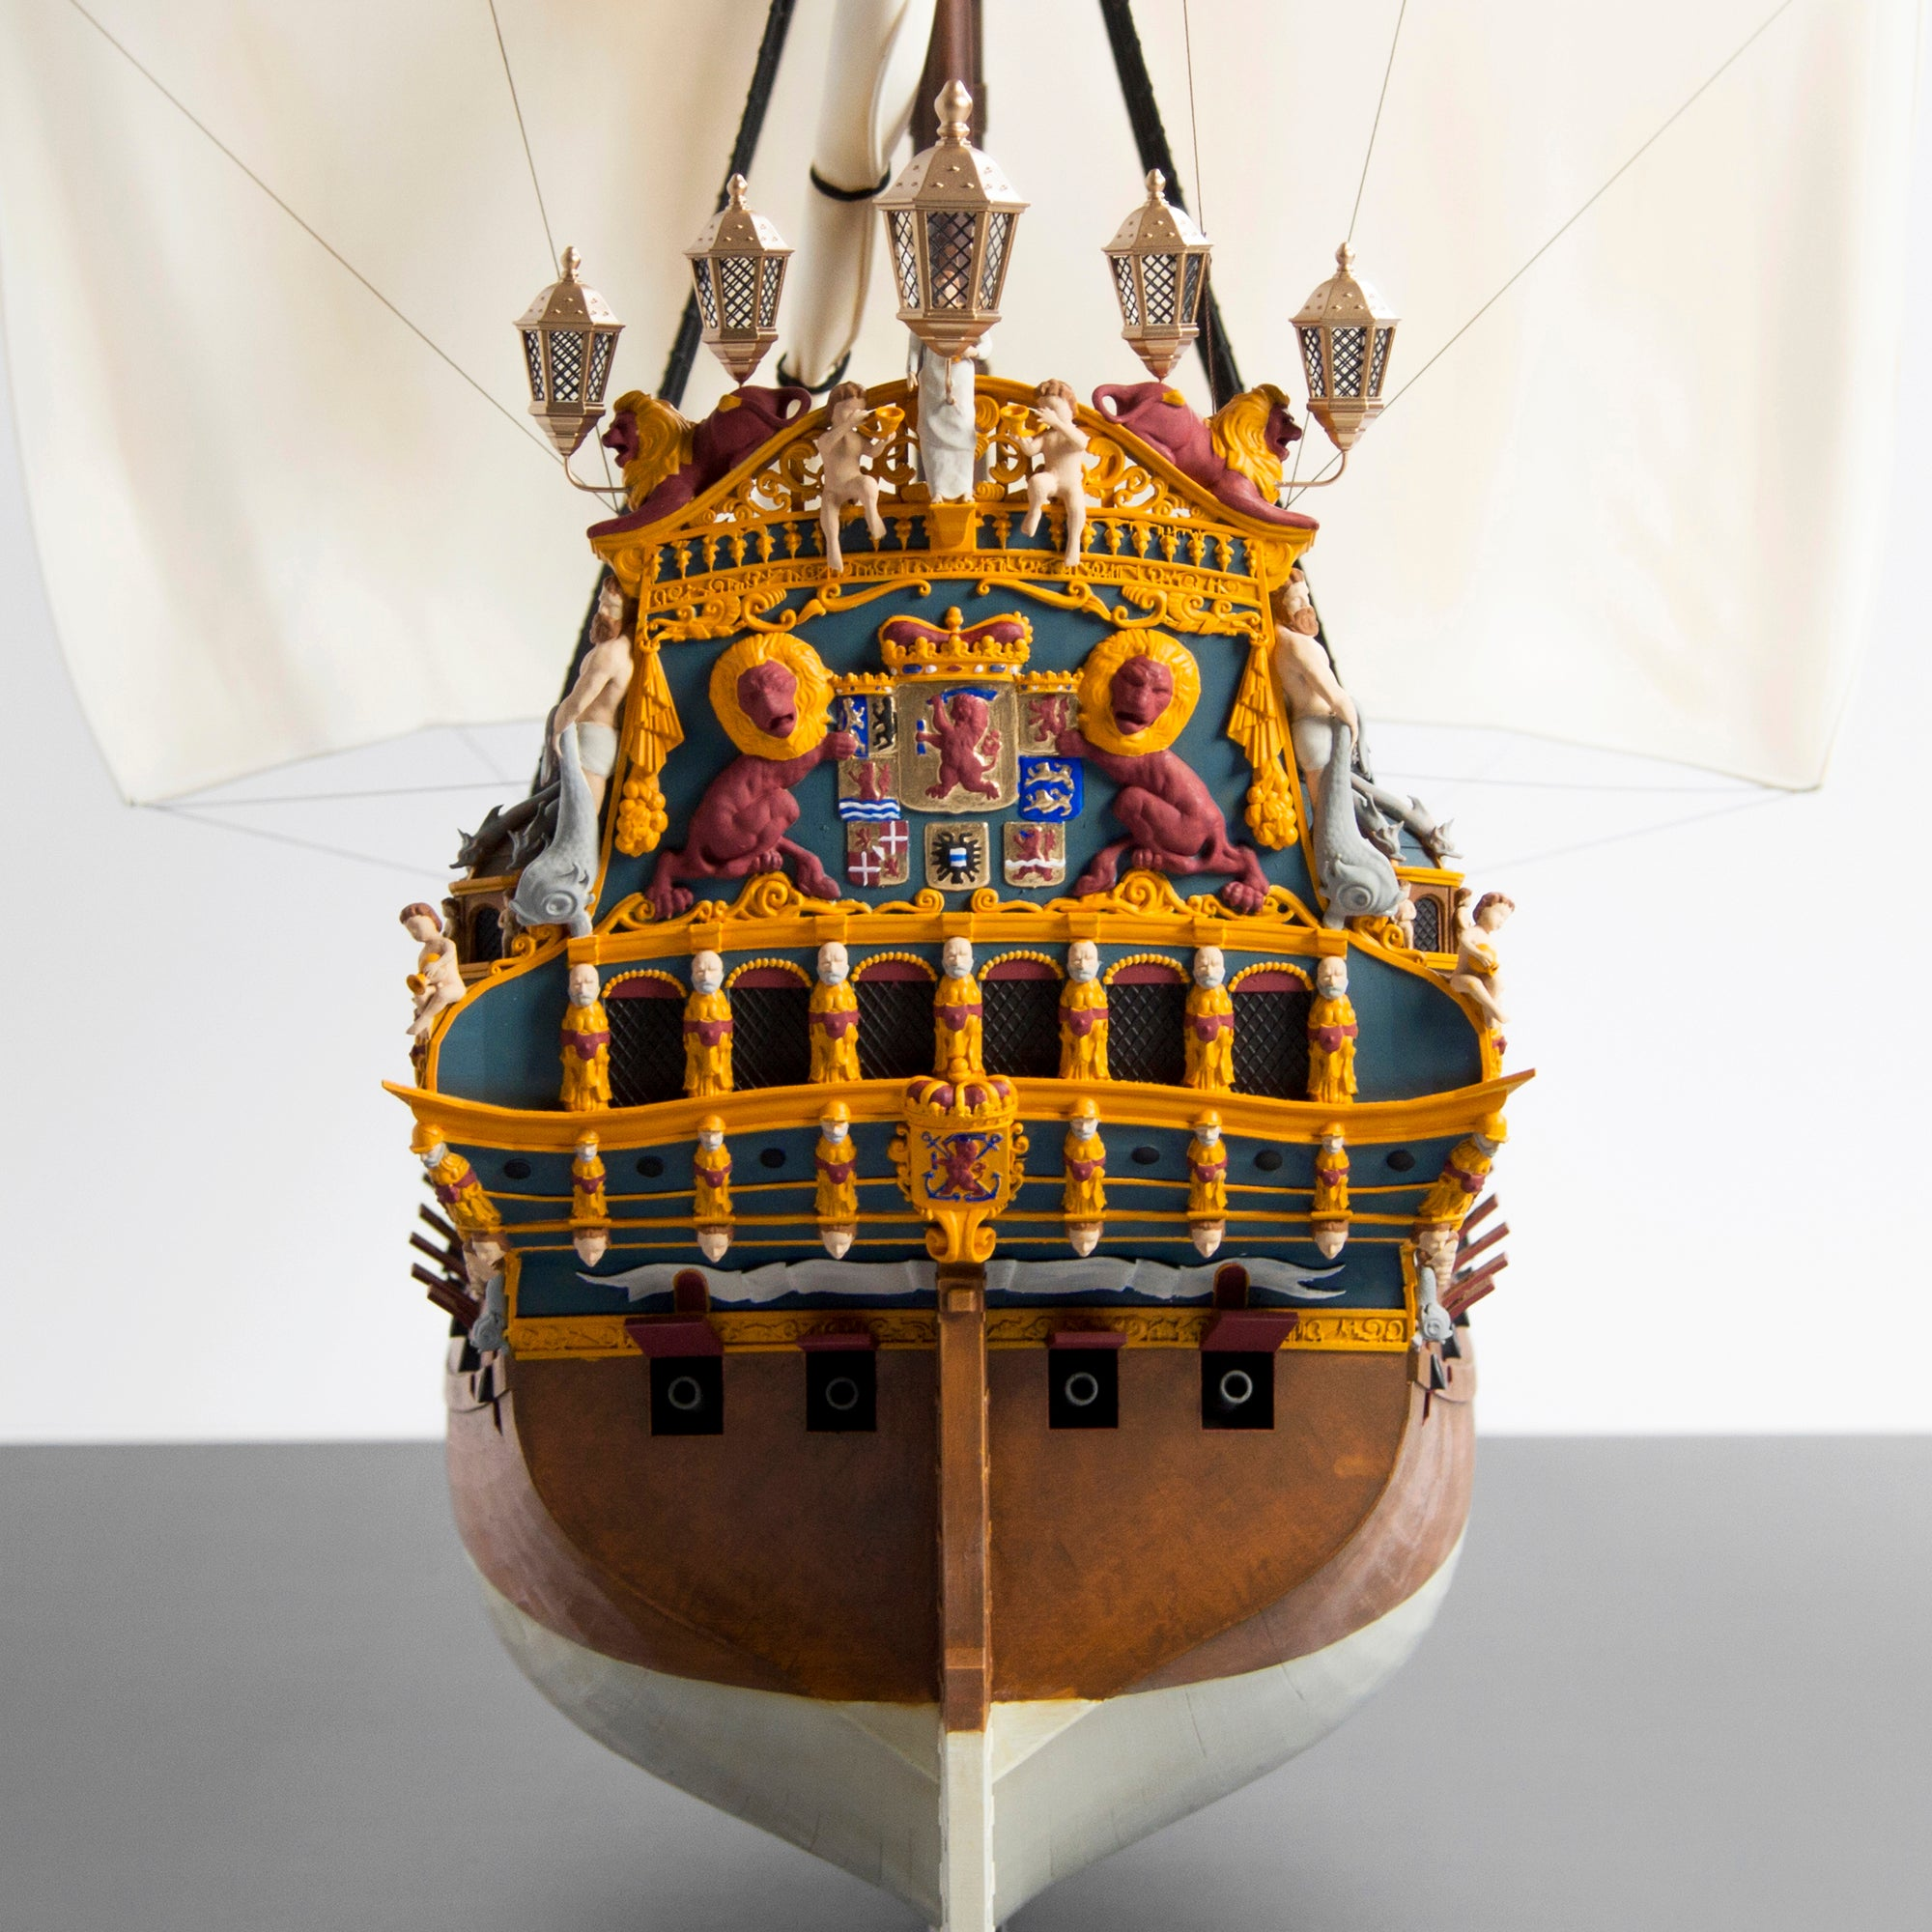 The full detailed stern